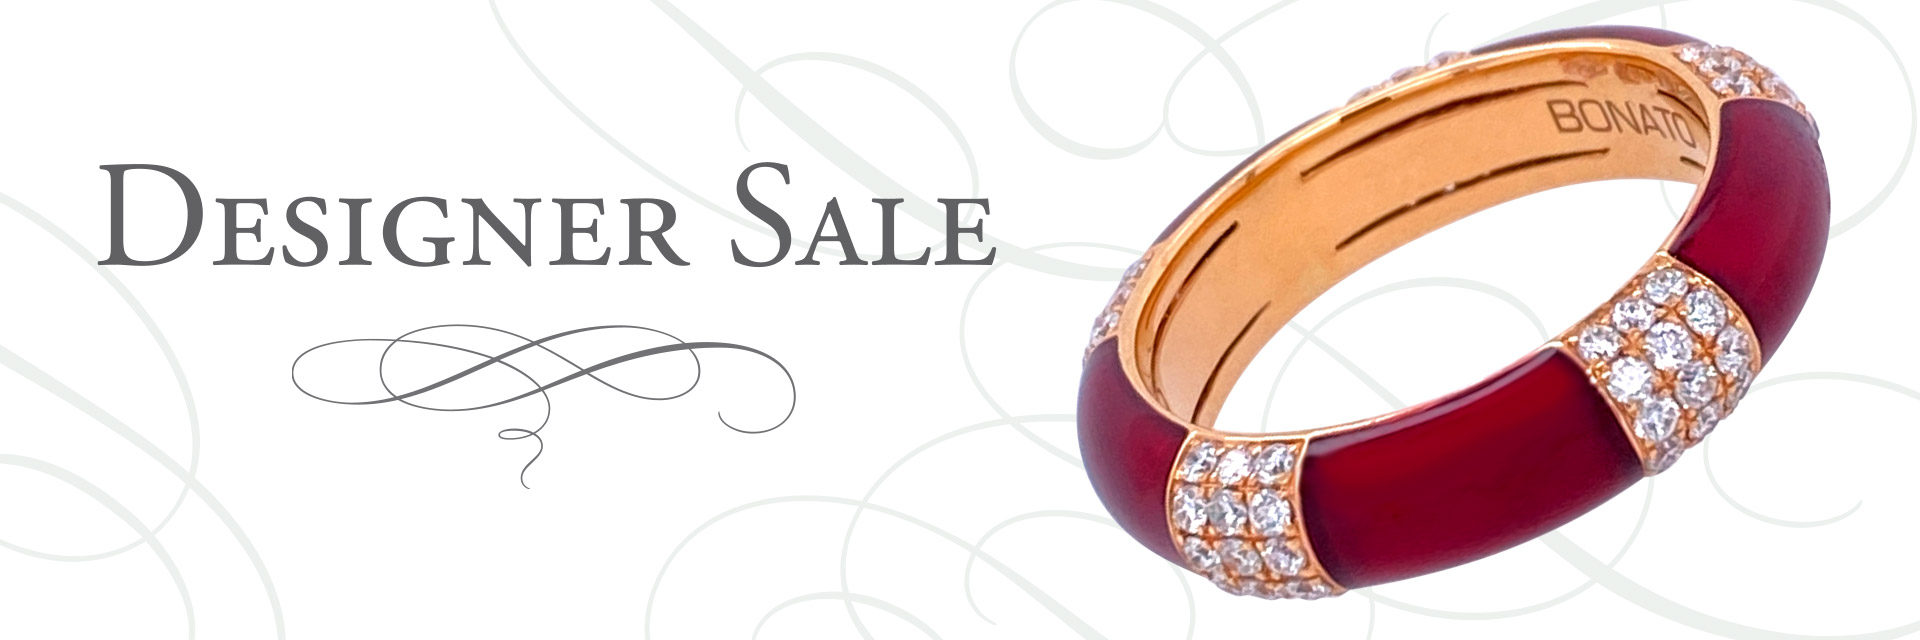 David Harvey Jewelers Designer Clearance Sale